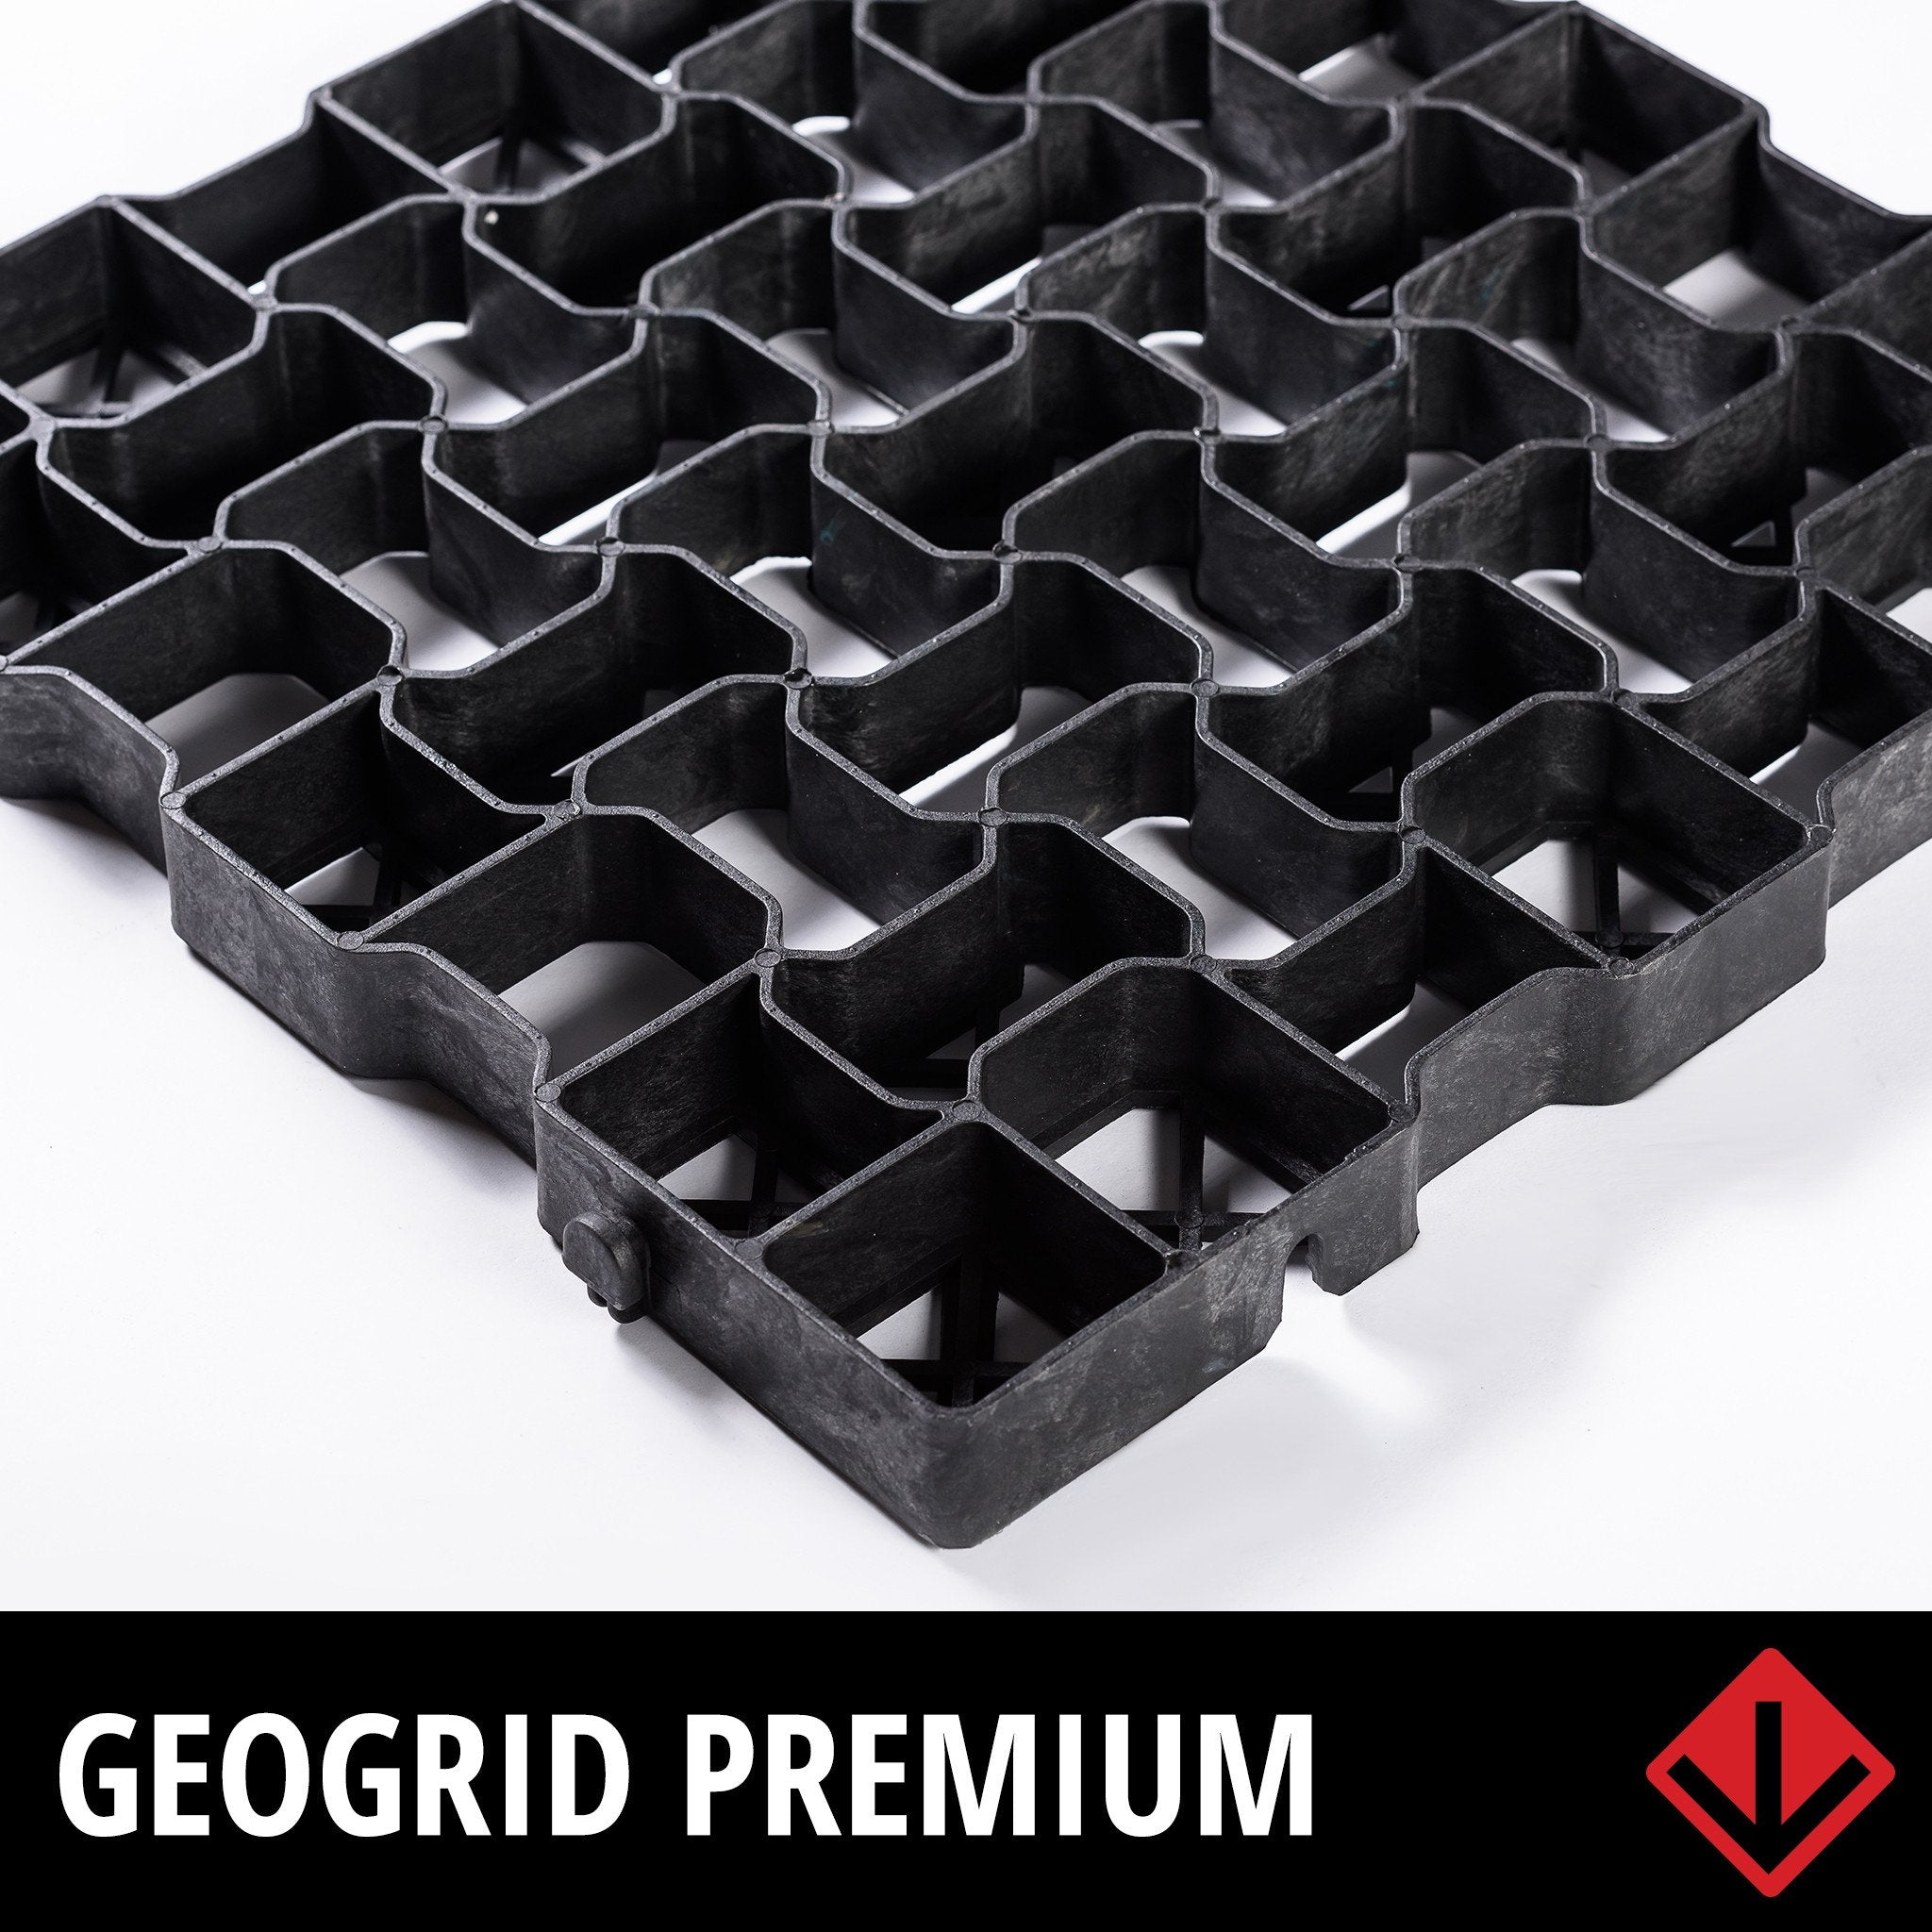 6x10 Greenhouse Foundation Pack Greater Flexibility